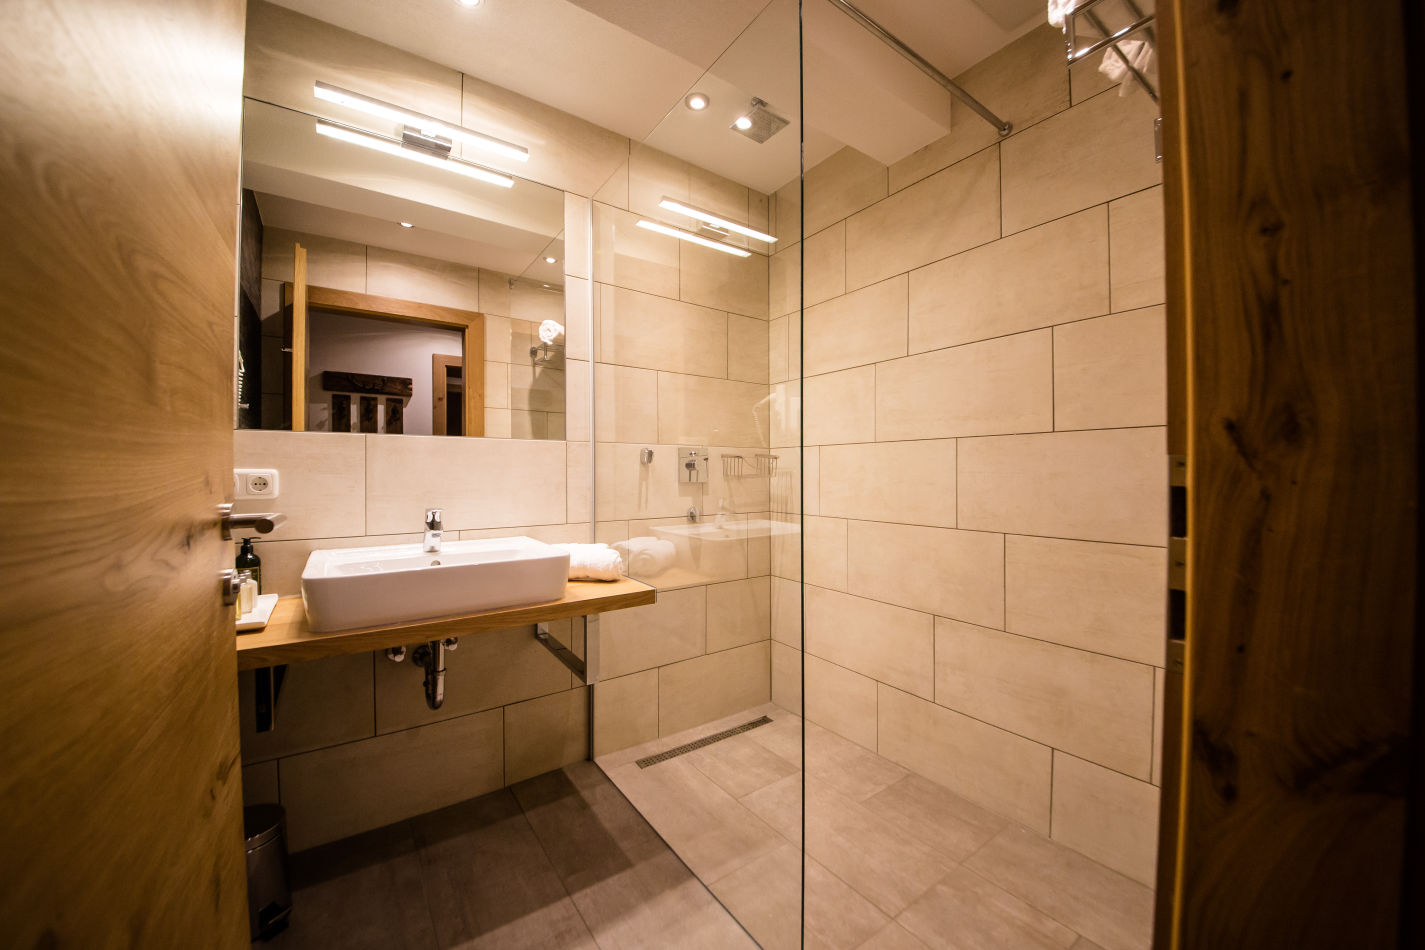 53-bathroom-image-3-2